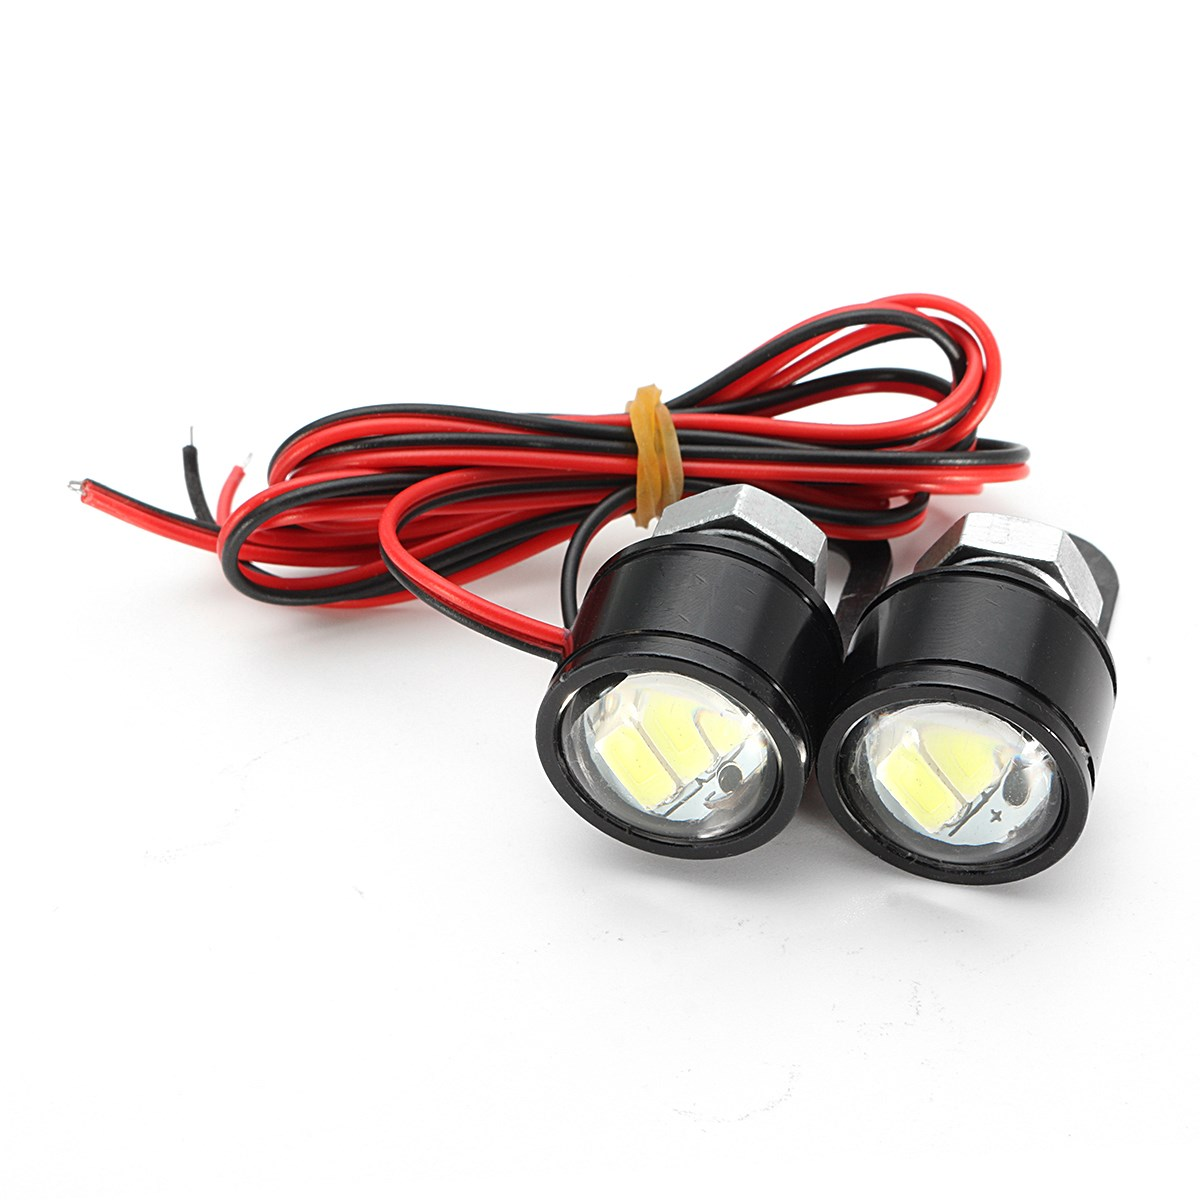 2PCS 12V Motorcycle Contant Bright Eagle Eye LED Daytime Running Light Lamp Rearview Mirror Decor